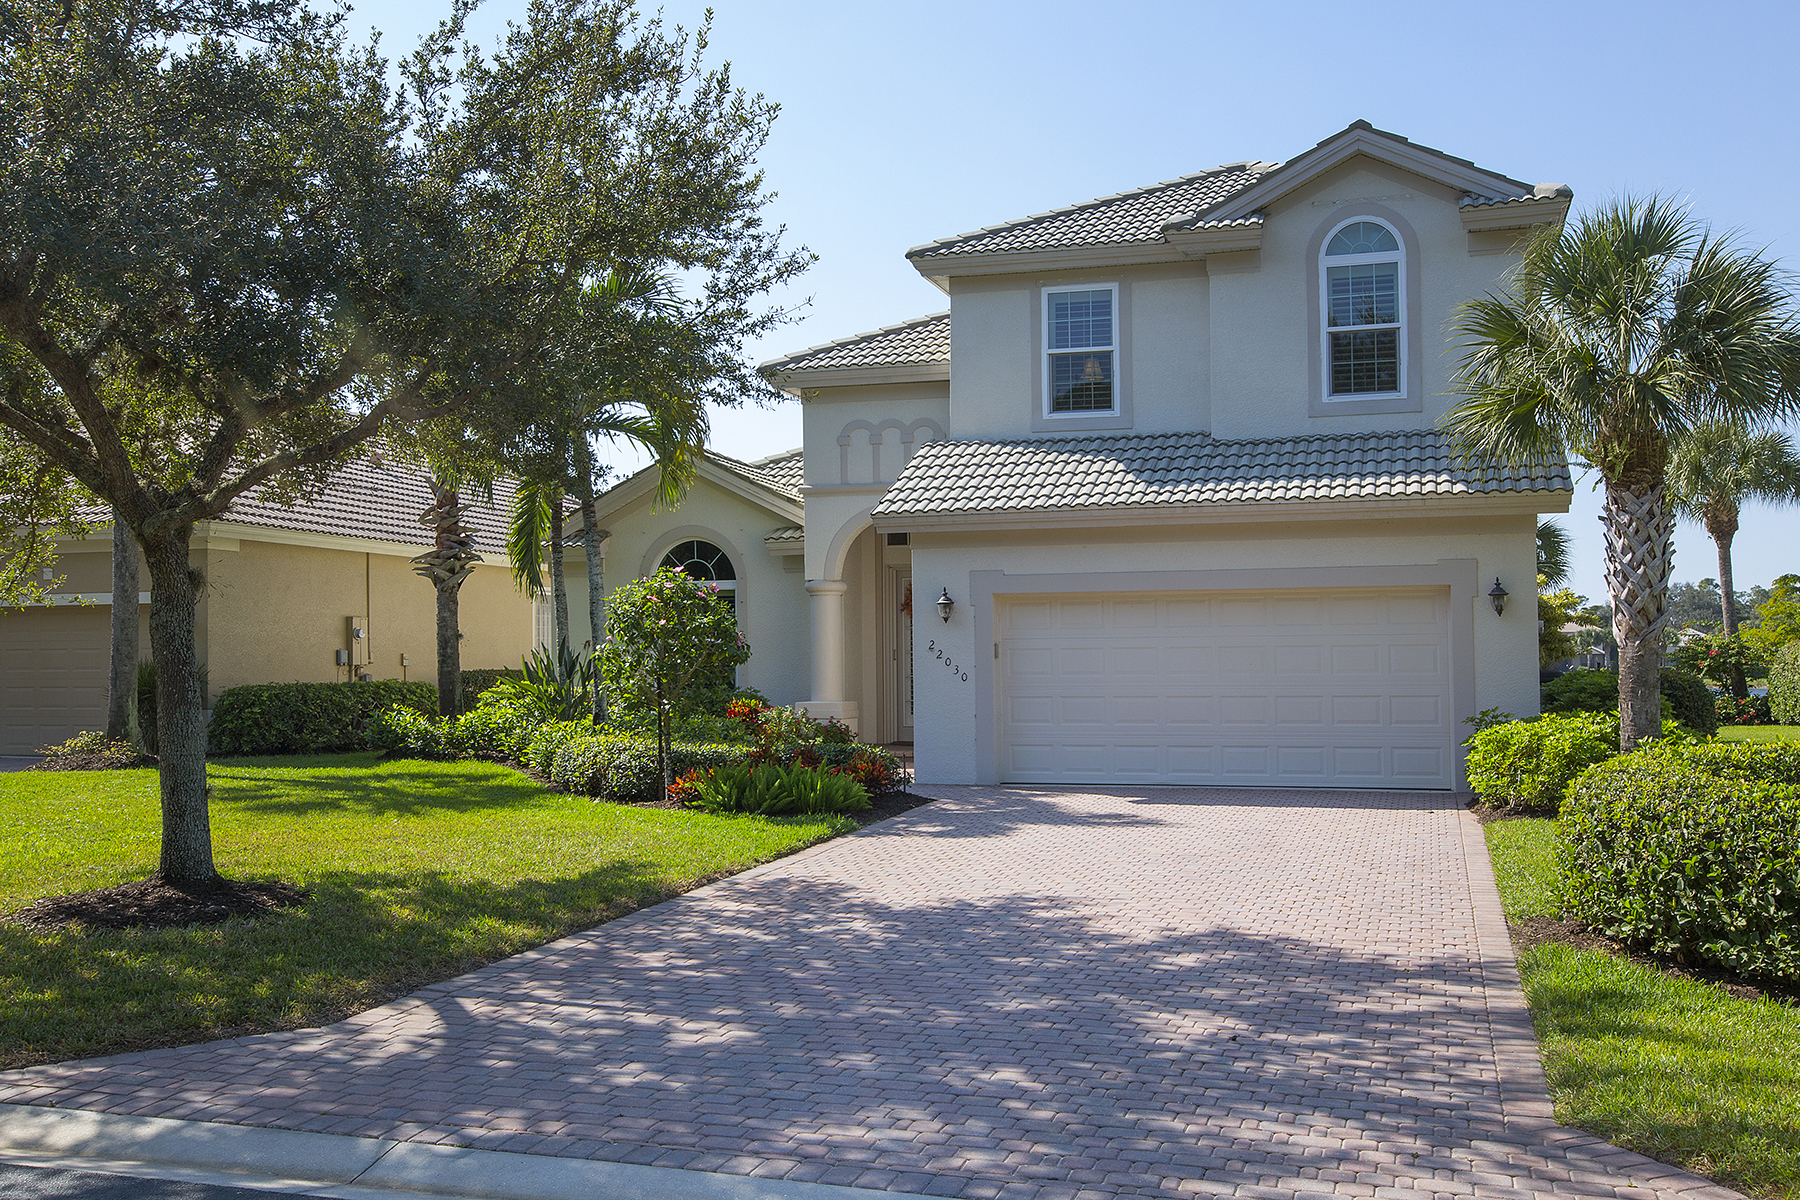 Single Family Home for Sale at LONGLEAF - SHADOW WOOD AT THE BROOKS 22030 Longleaf Trail Dr Estero, Florida, 34135 United States